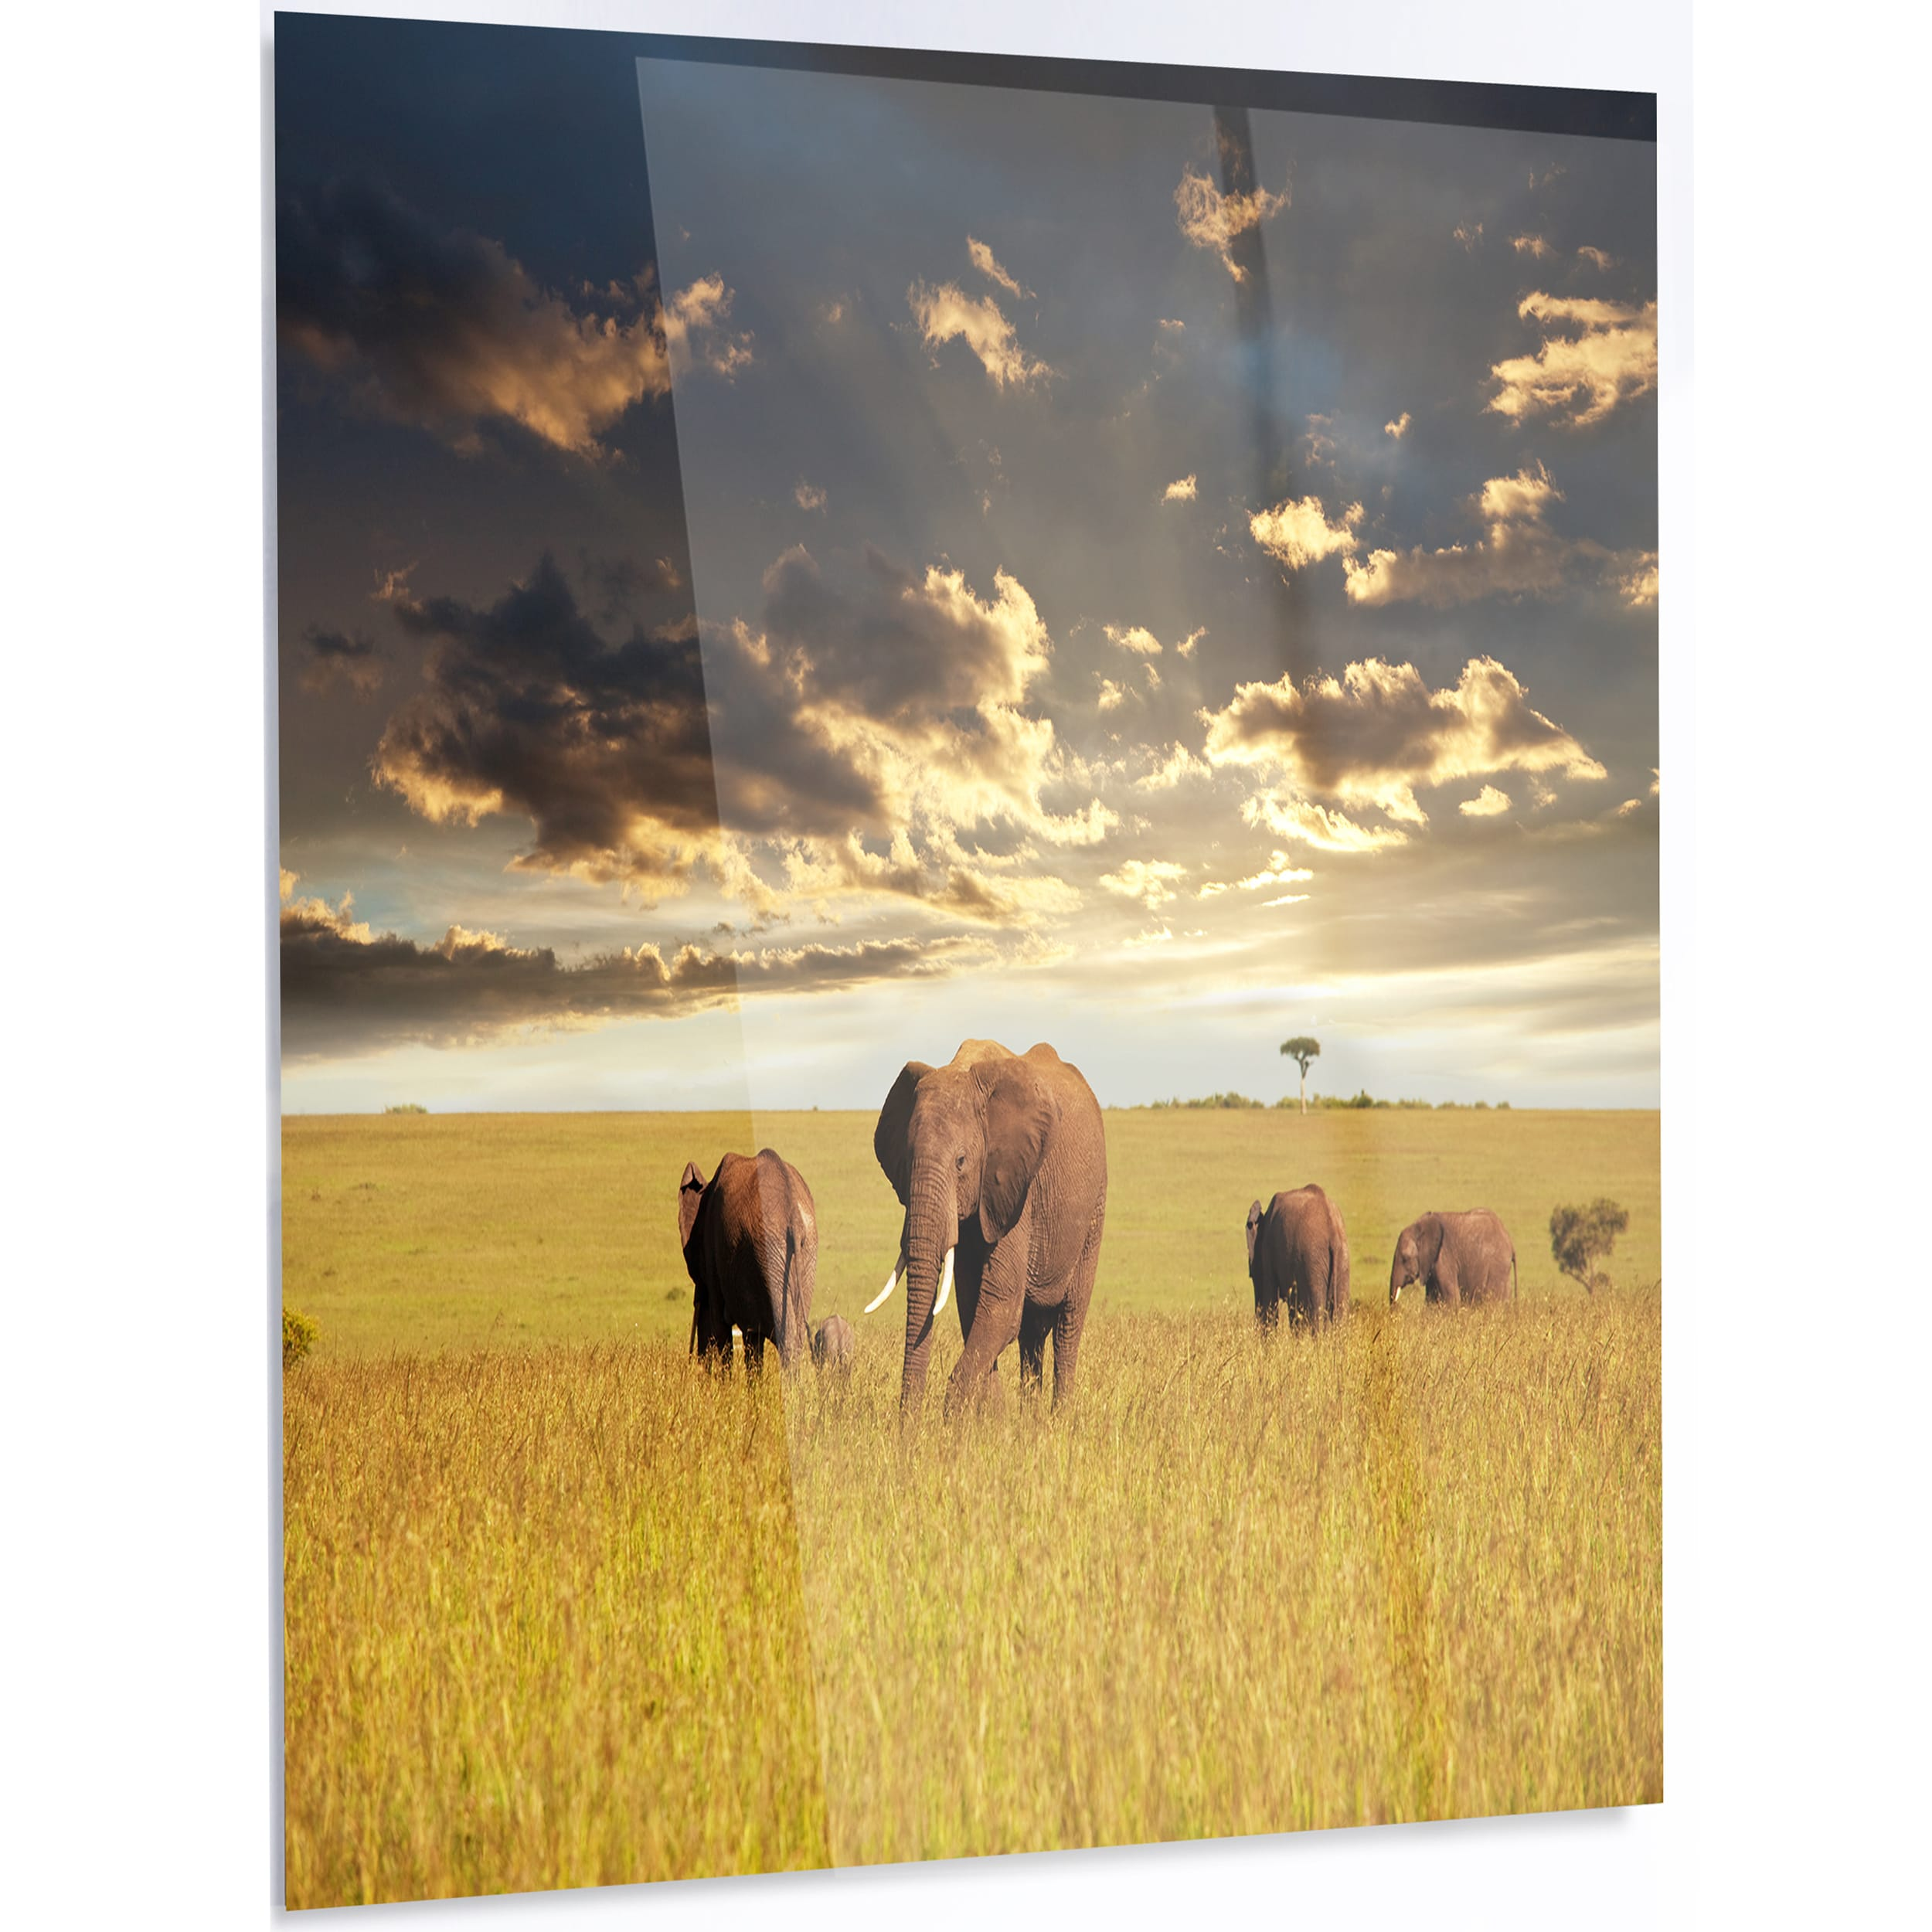 Luxury Africa Wall Art Pictures - Wall Art Collections ...